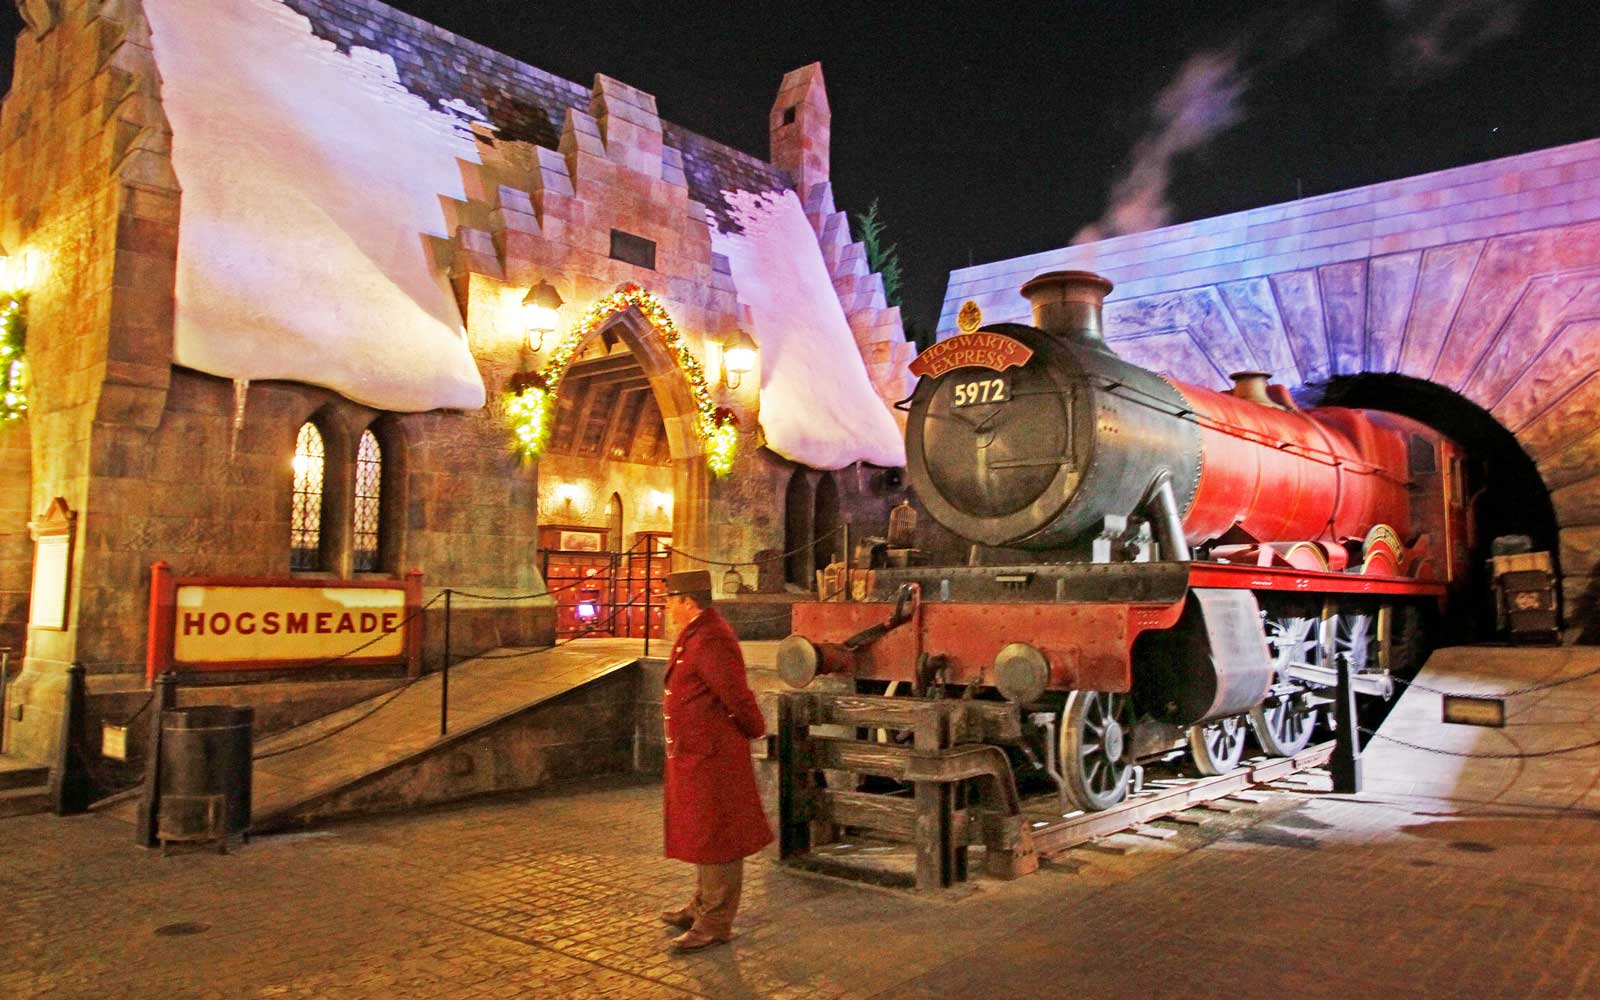 A steaming locomotive at Hogsmeade during a nighttime preview event of Christmas in the Wizarding World of Harry Potter